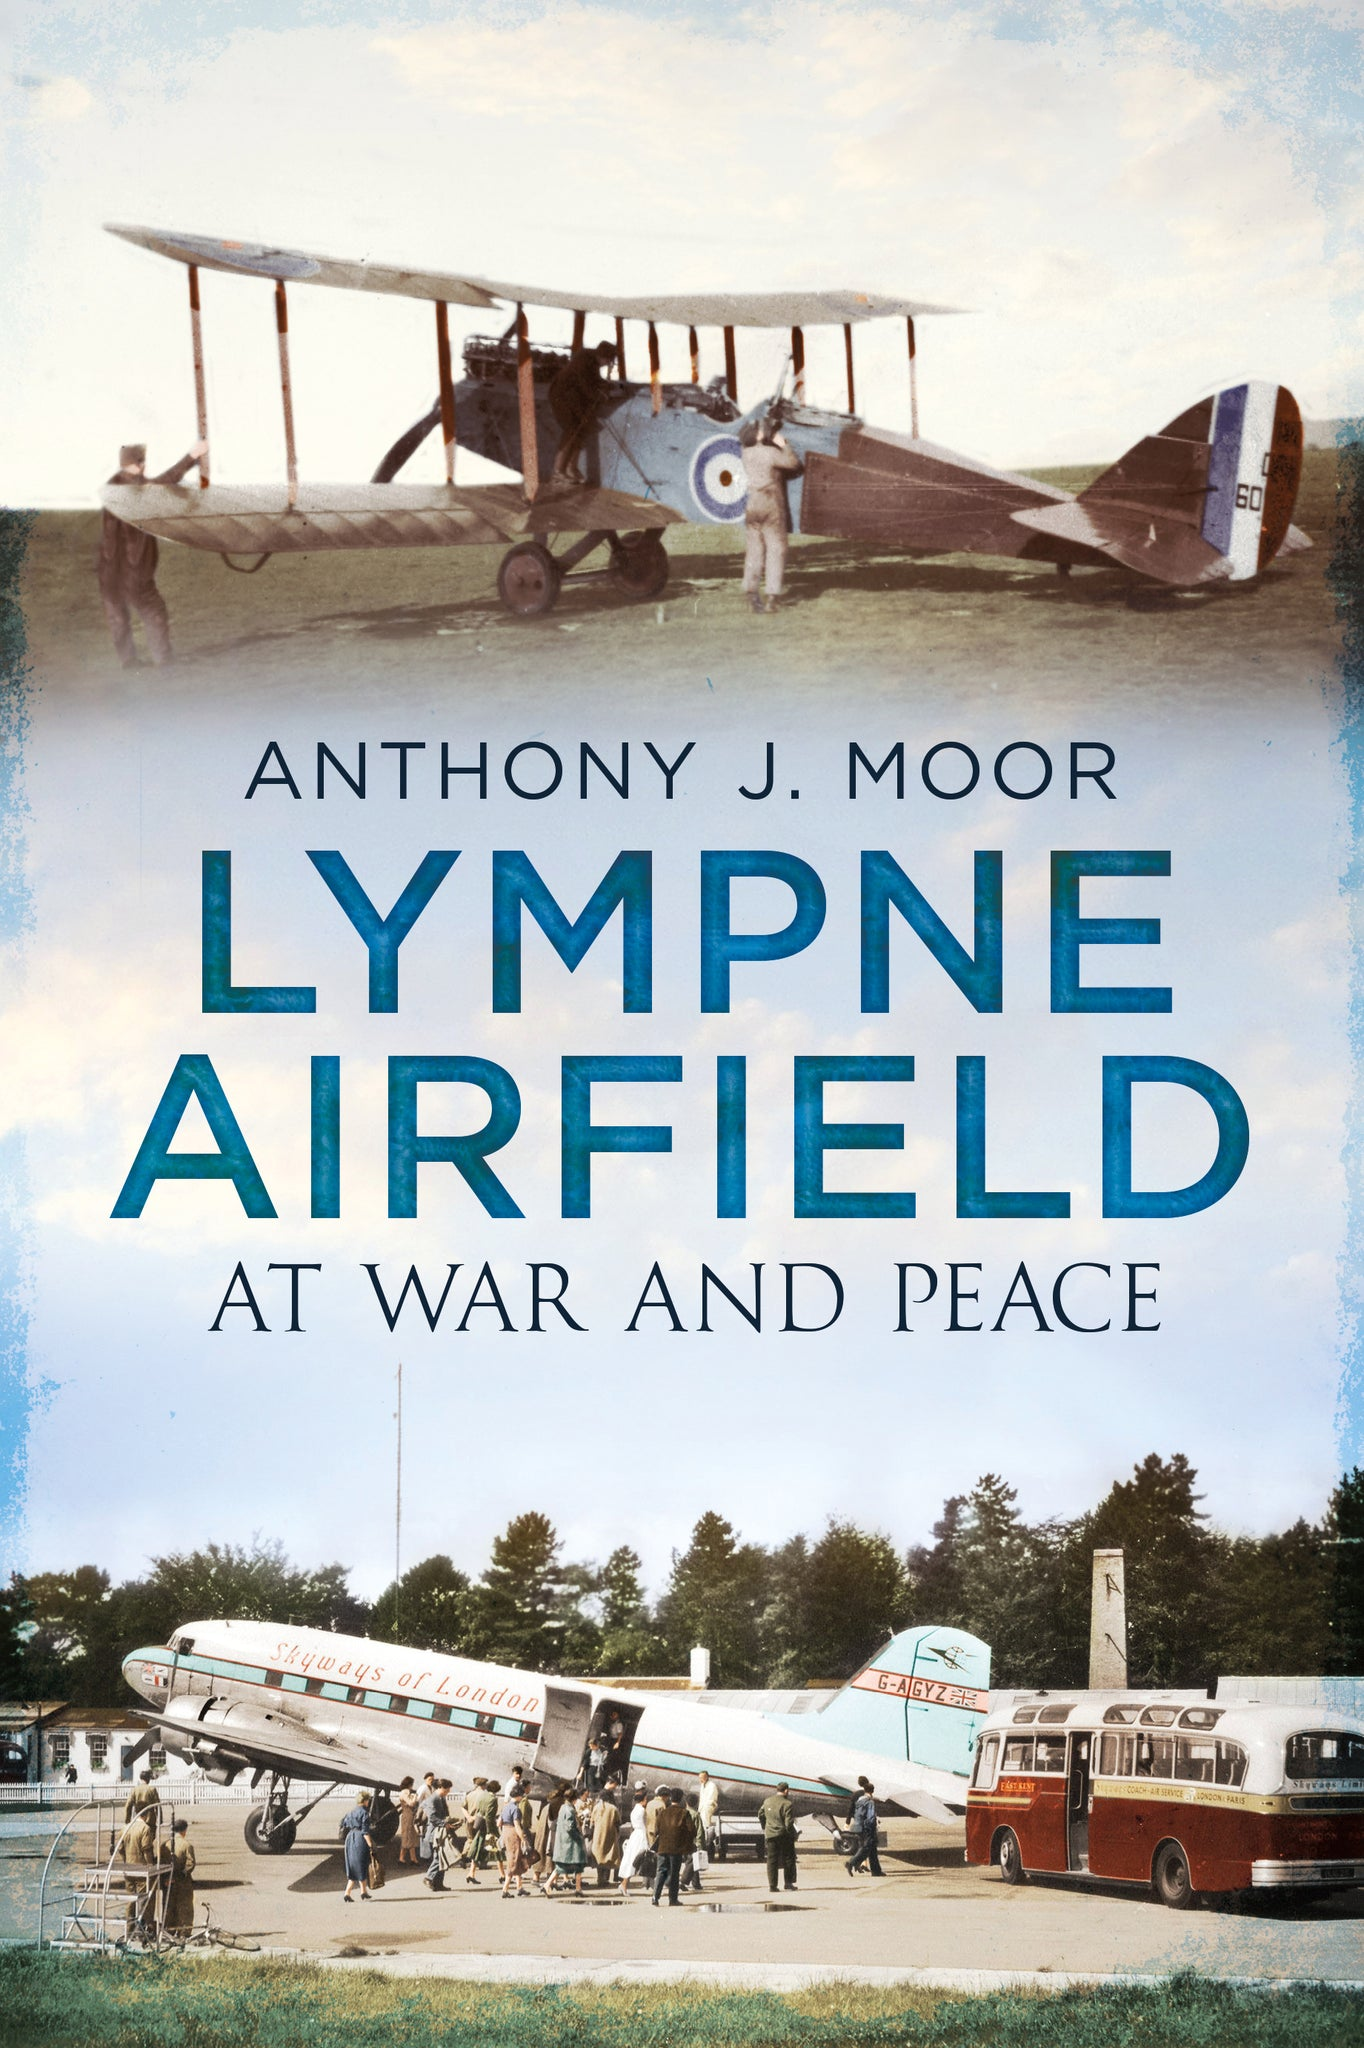 Lympne Airfield At War and Peace